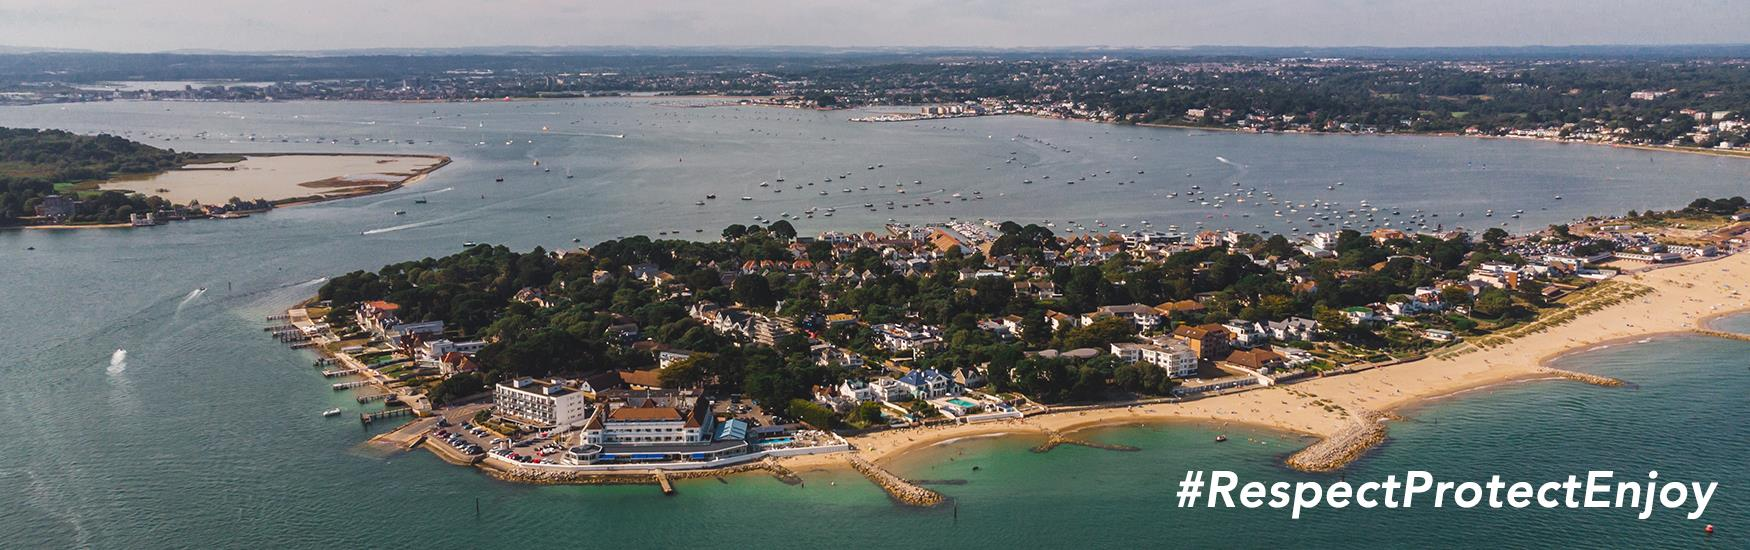 A shot of Poole Bay and Brownsea Island with Respect Protect and Enjoy messaging overlaying it